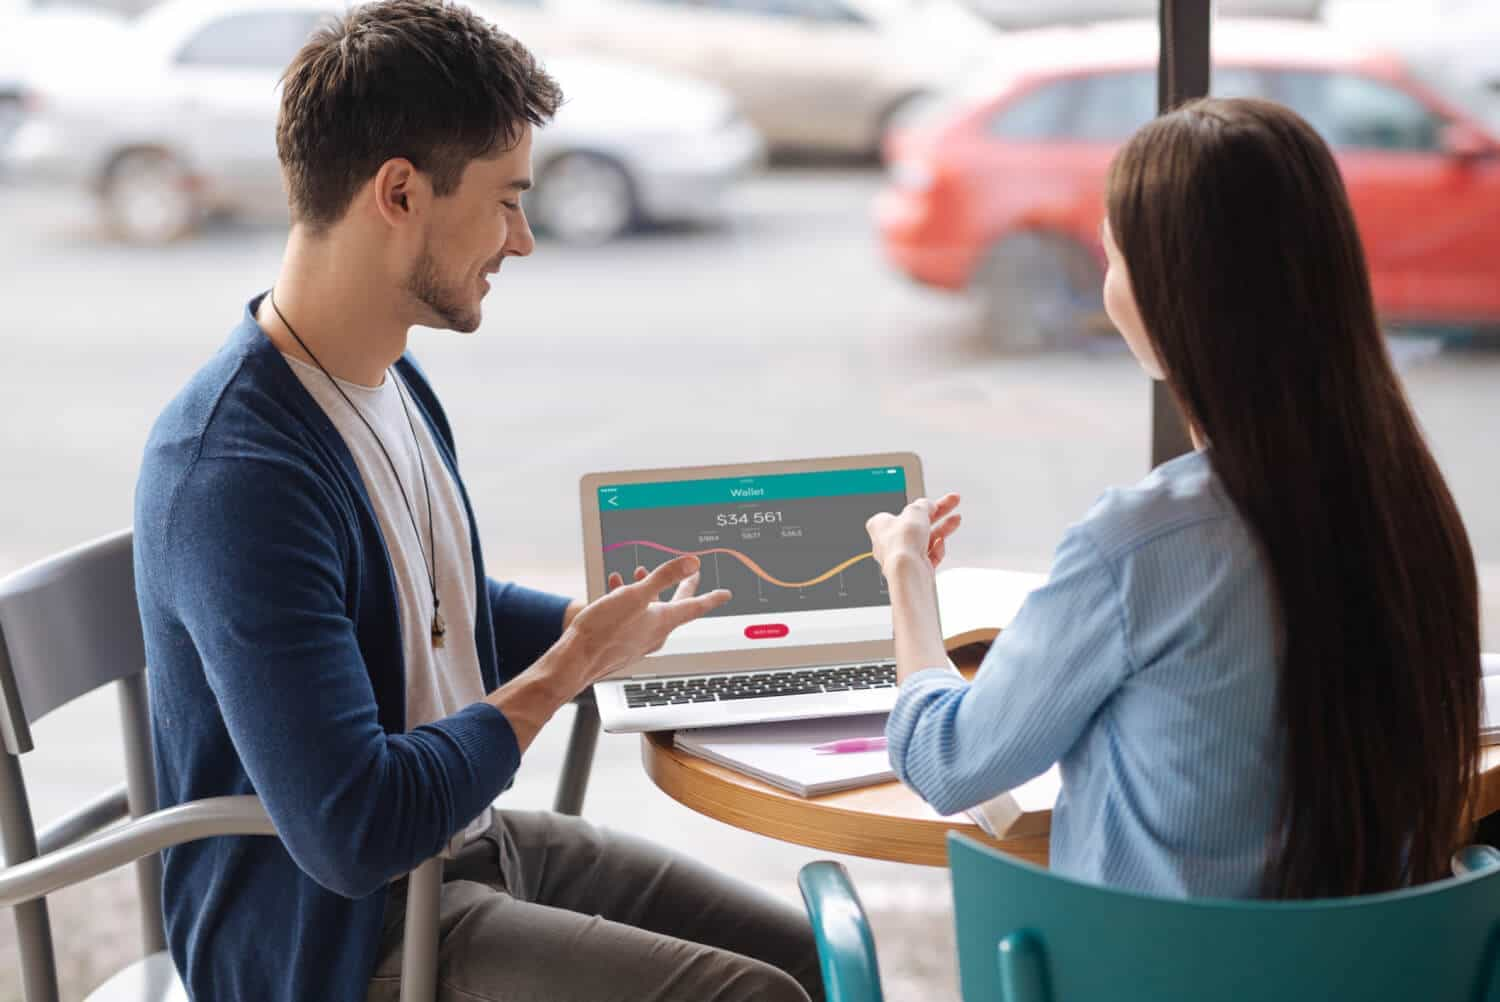 Two Millennials sit at an outdoor cafe looking at a Wallet cash flow graph in a Personal Financial Management (PFM) platform